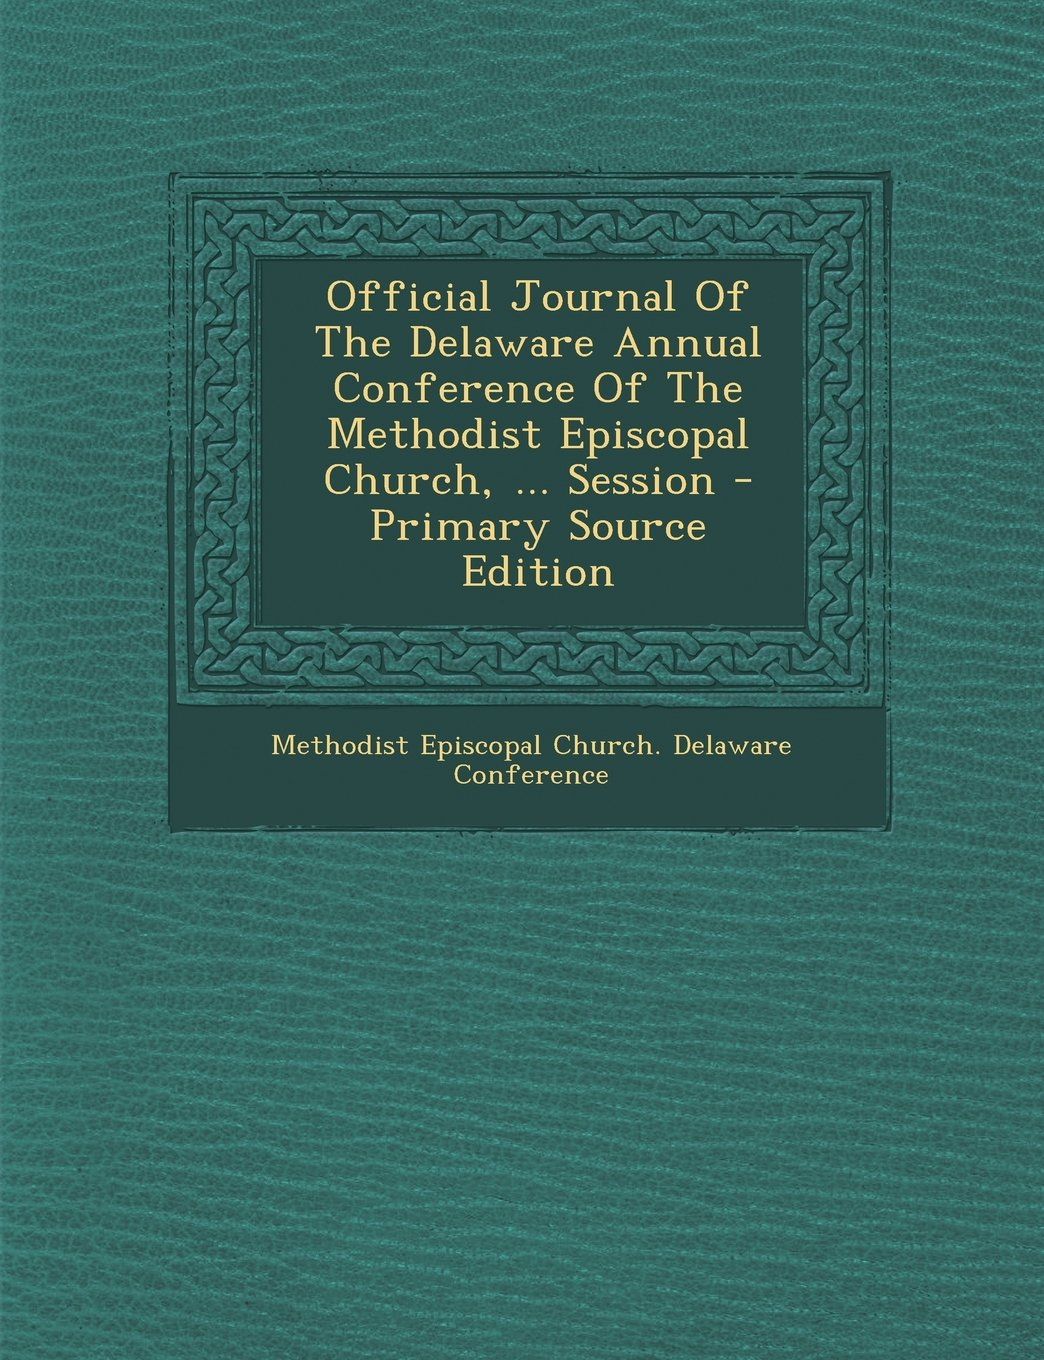 Official Journal of the Delaware Annual Conference of the Methodist Episcopal Church, ... Session - Primary Source Edition pdf